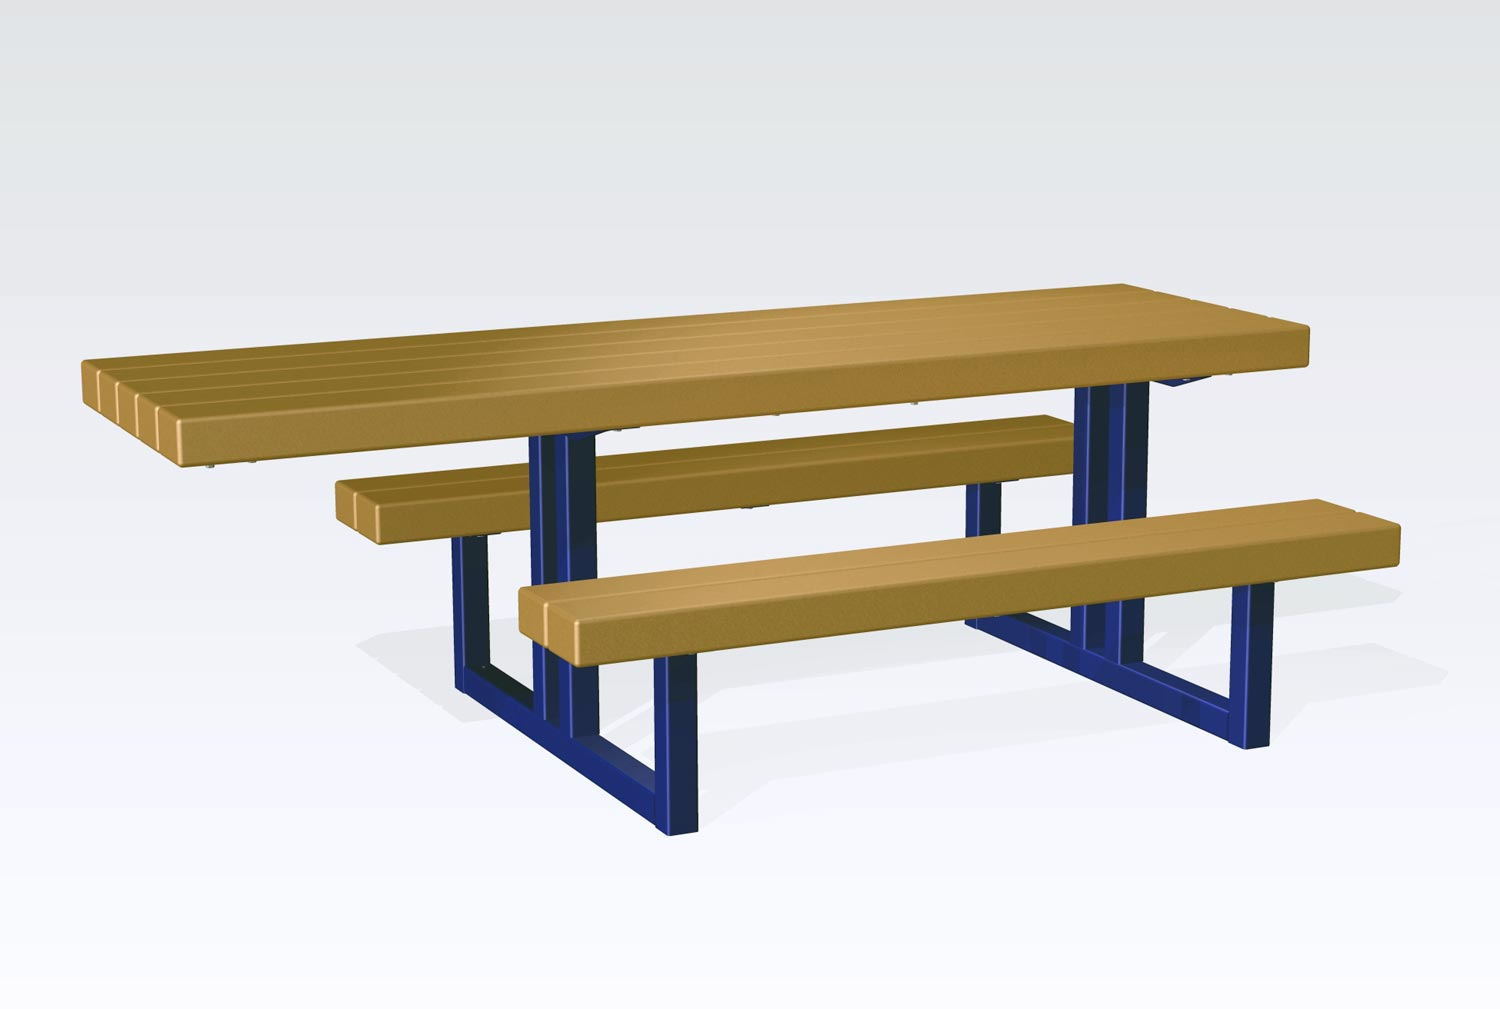 TimberForm Site Furnishings - Steel picnic table frame